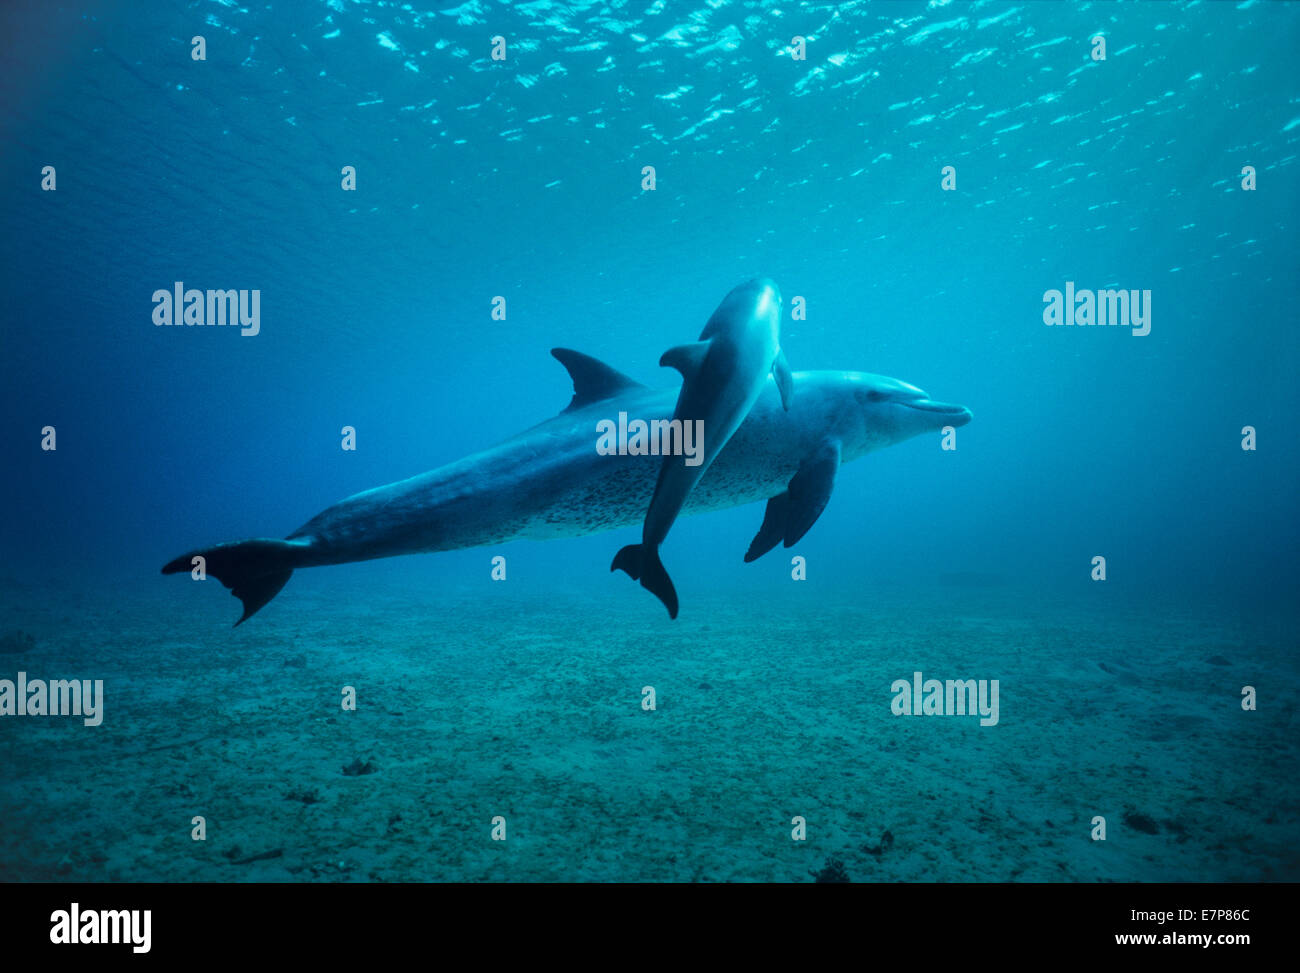 Wild bottlenose dolphins (Tursiops truncatus) mother and calf.  Nuweiba, Egypt, Red Sea - Stock Image